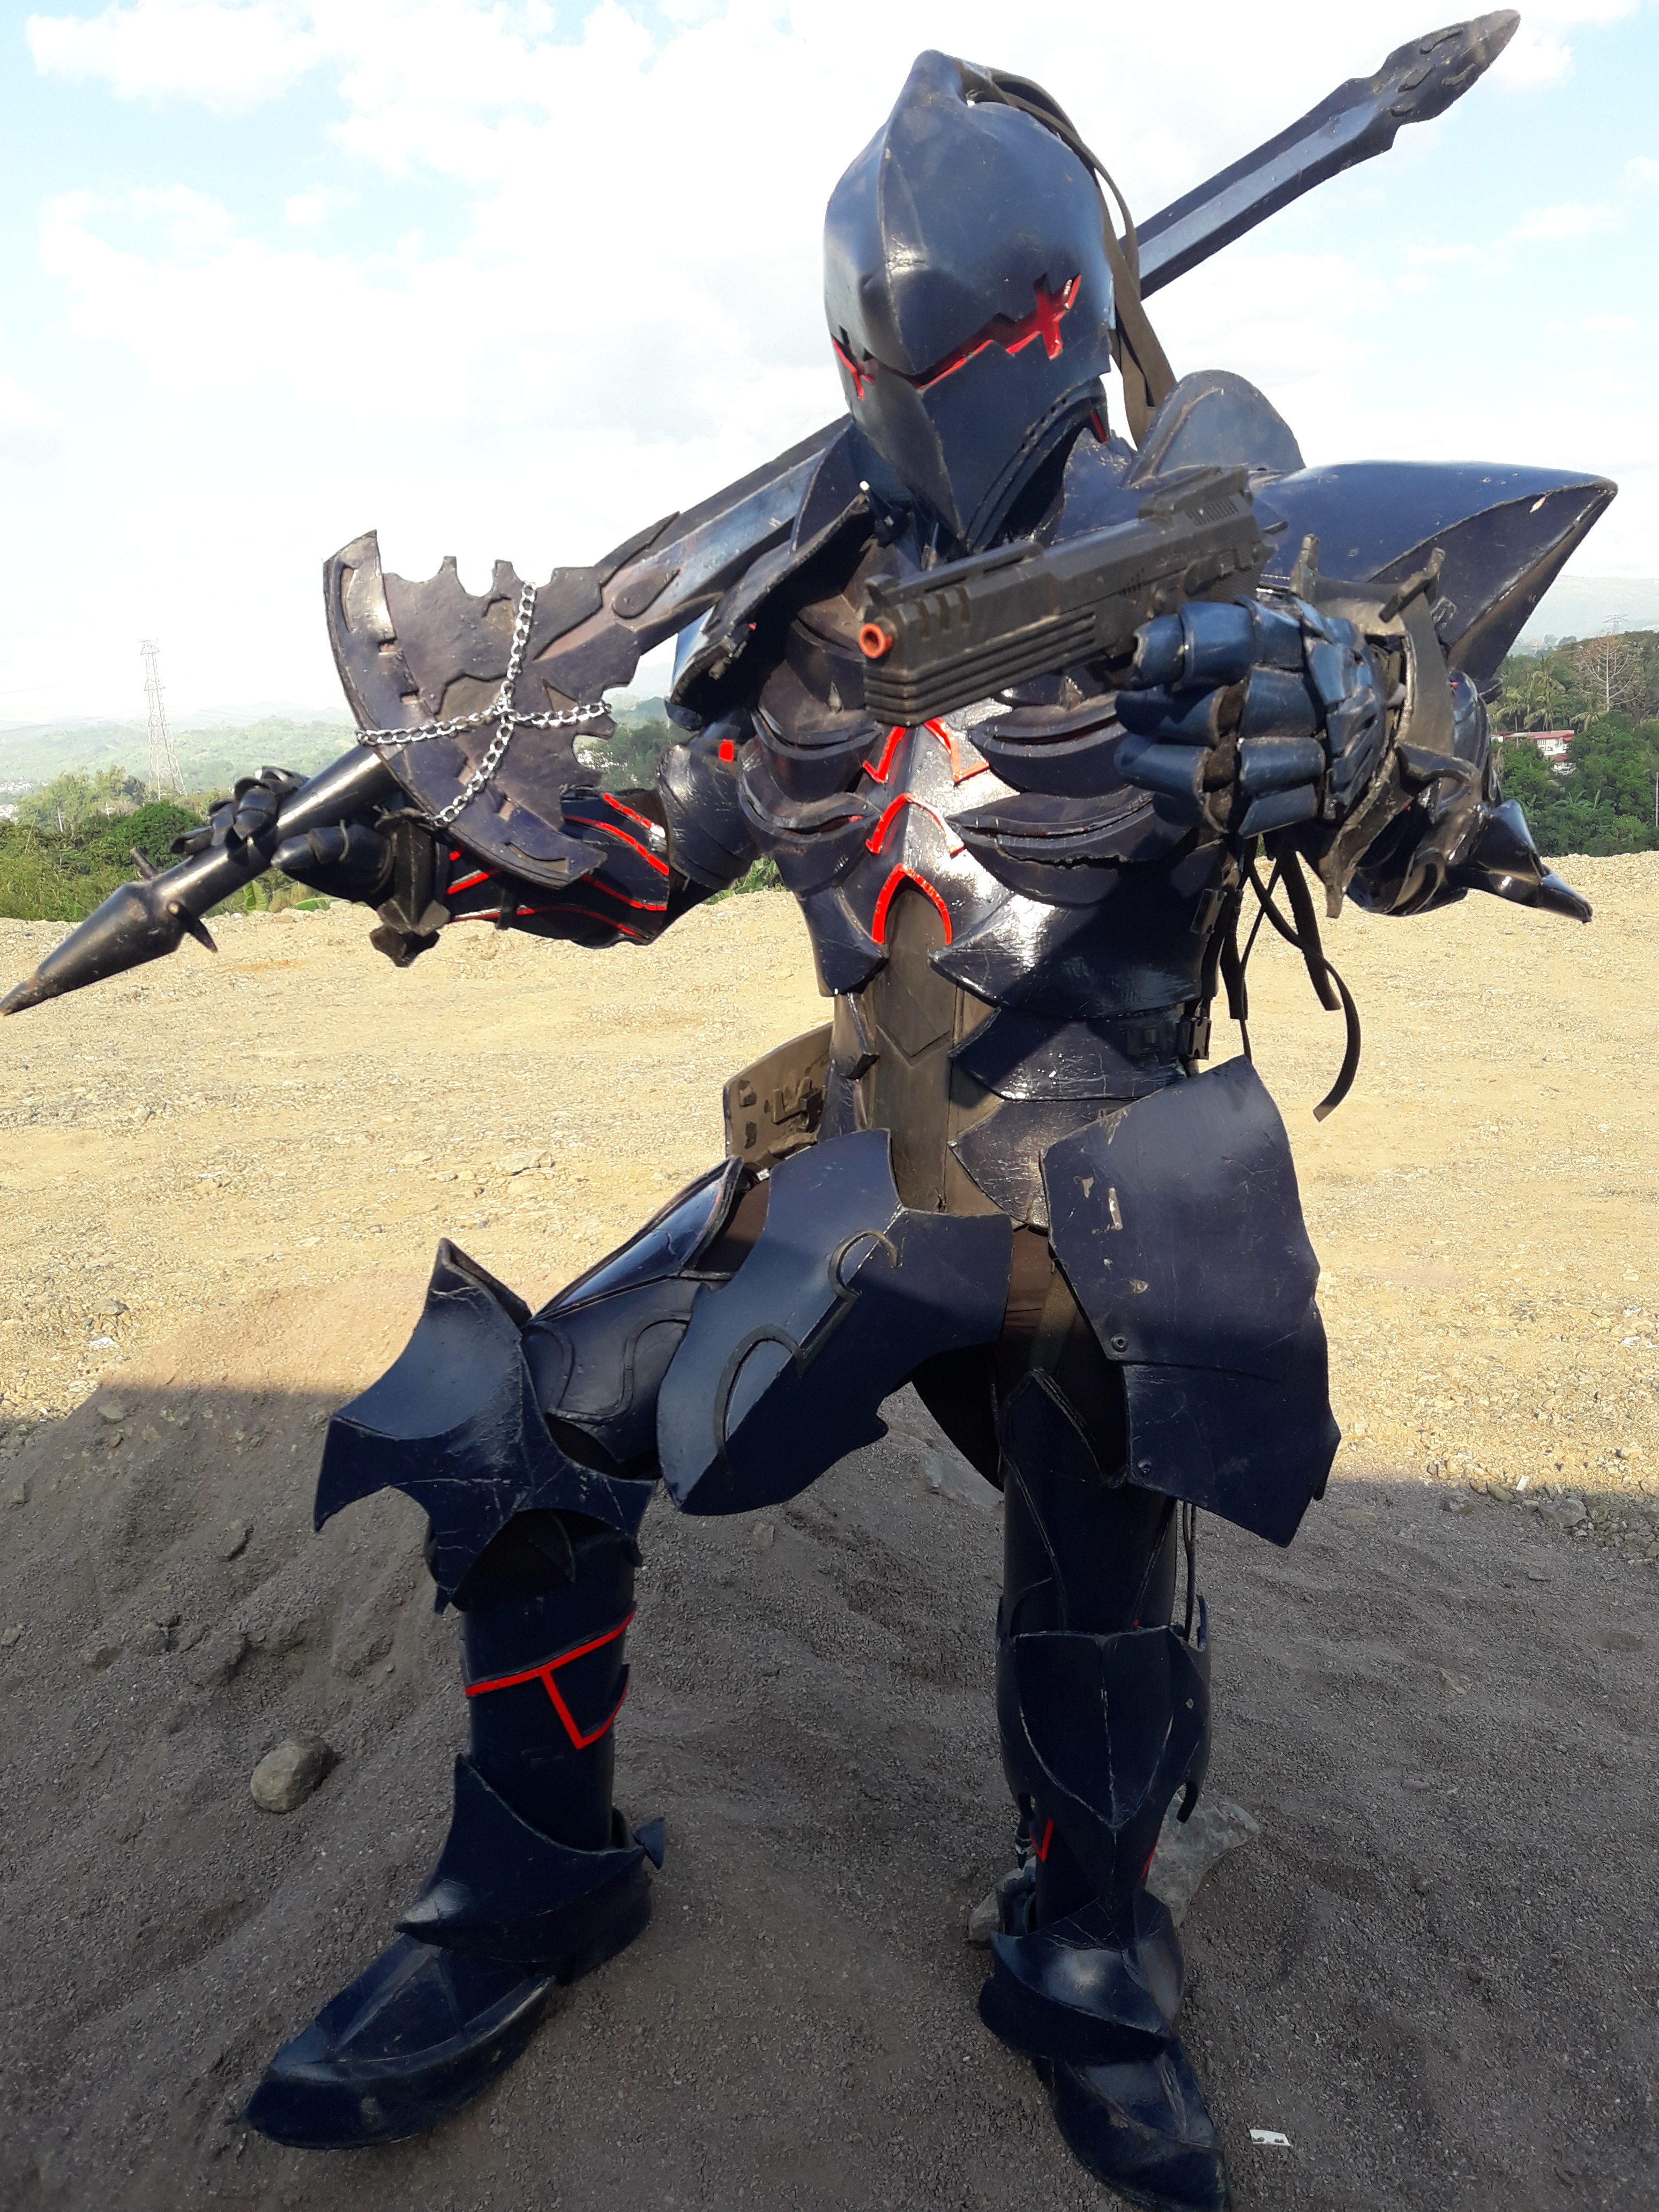 Man in black armor with sword and pistol